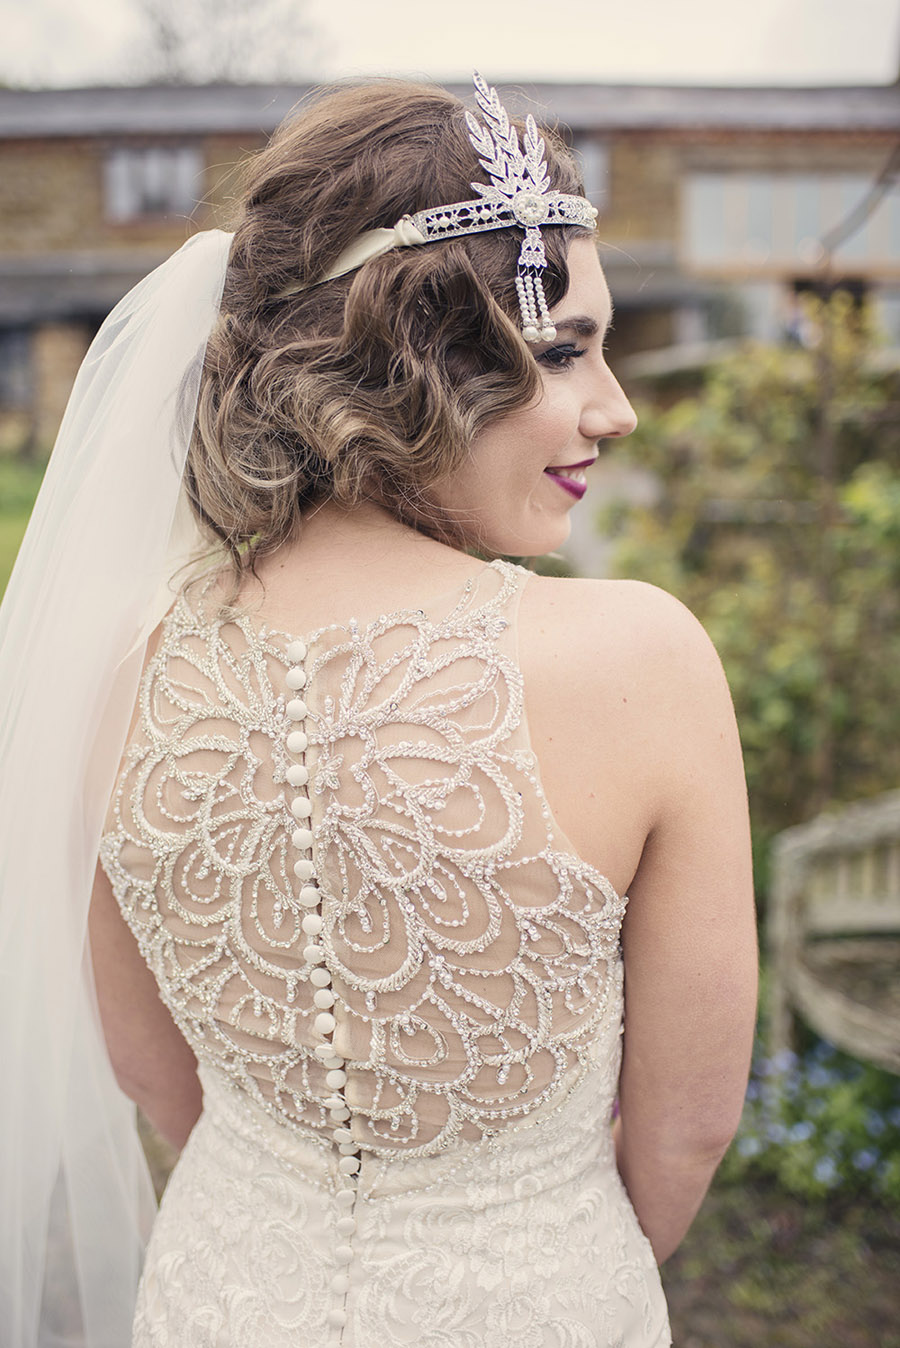 Gatsby vintage wedding at Crockwell Farm, images by Jodie Cooling Photography (19)